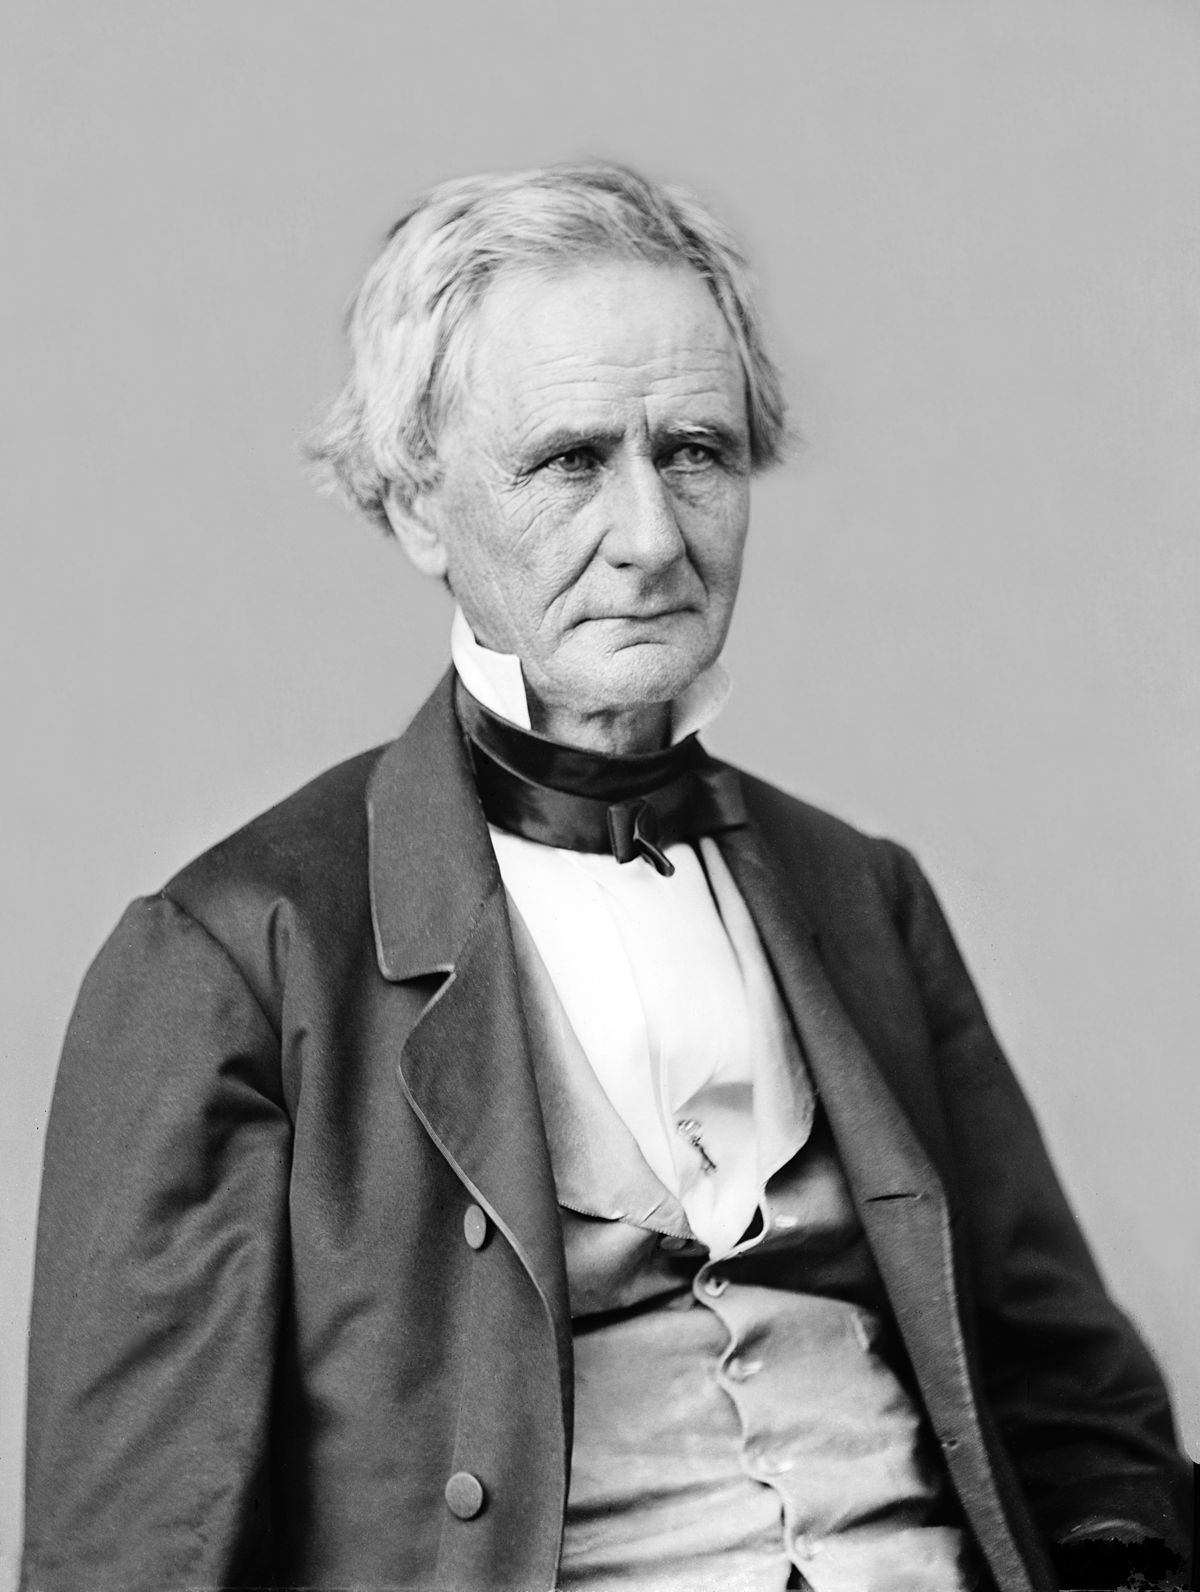 A portrait of Simon Cameron, U.S. Senator and President Lincoln's first Secretary of War.